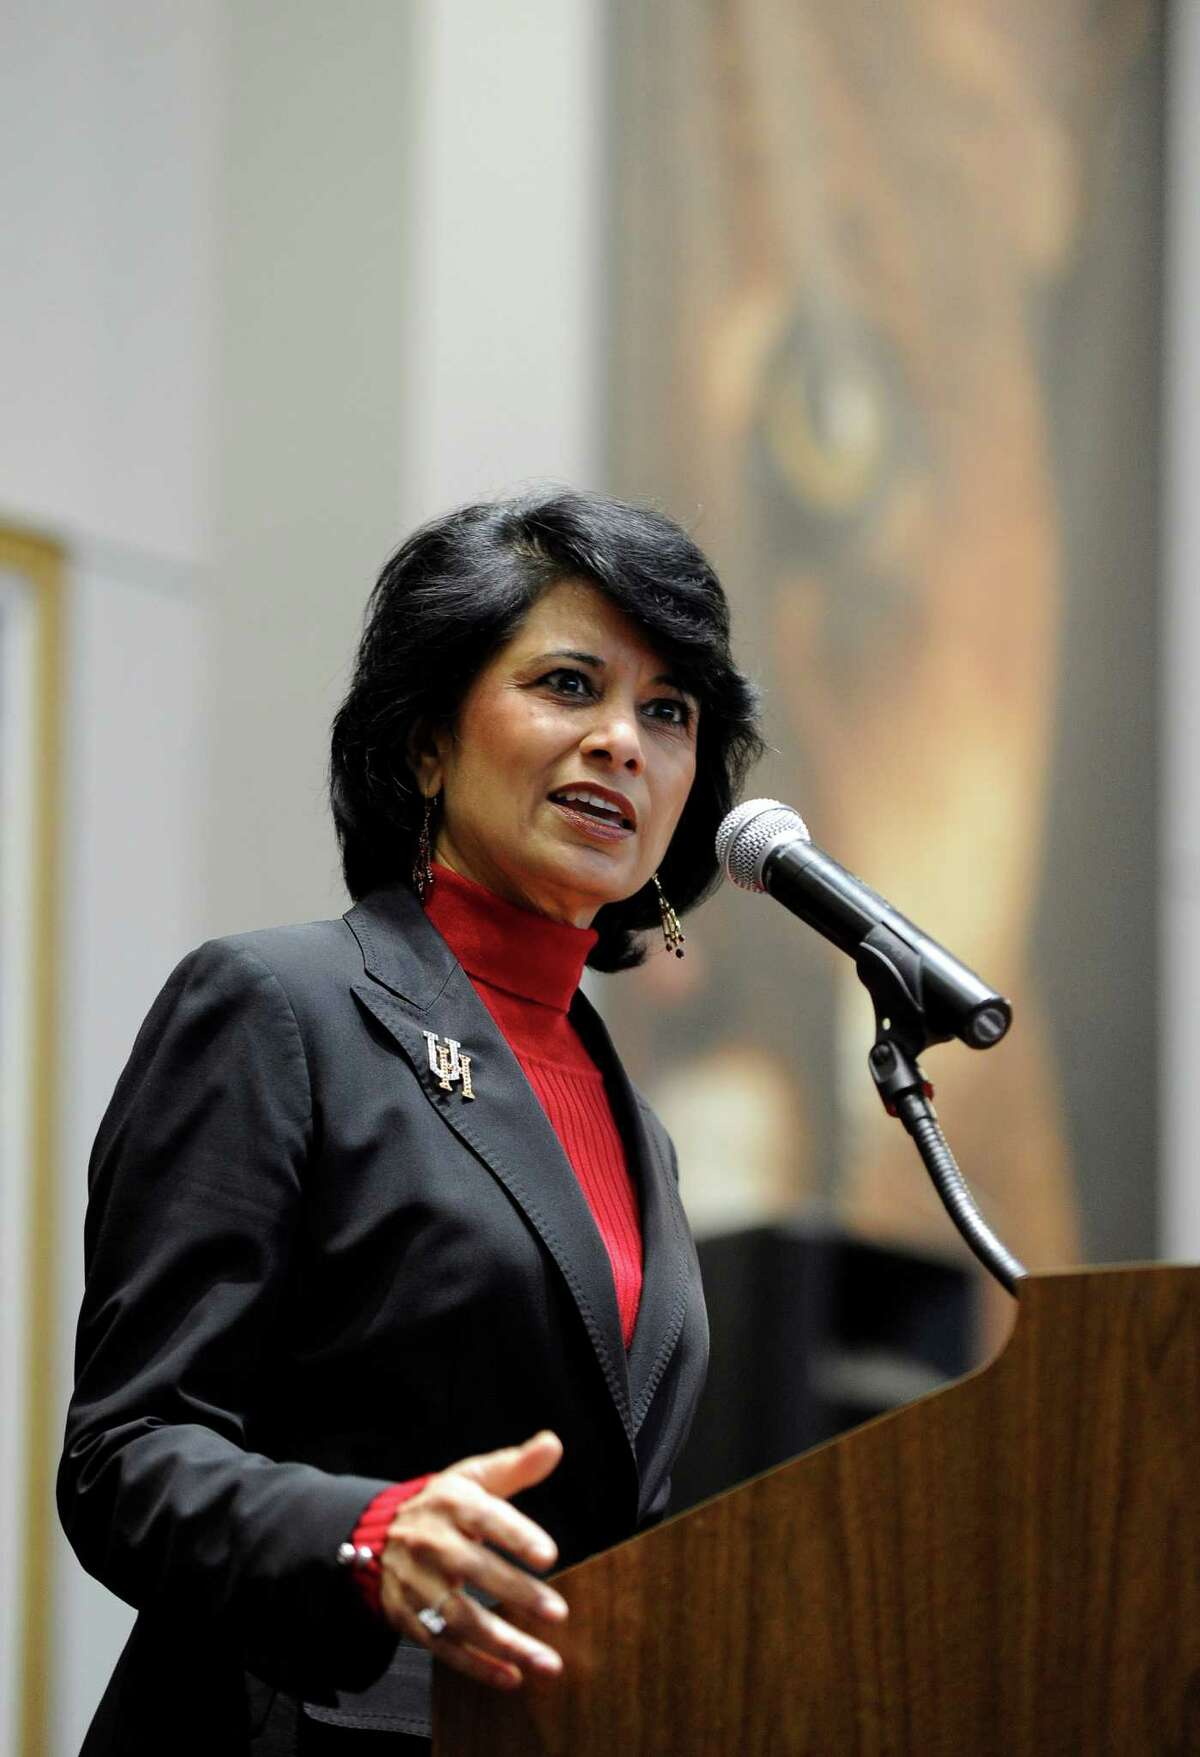 University of Houston president and chancellor Renu Khator speaks during a press conference Thursday, Dec. 22, 2011, in Houston. (AP Photo/Pat Sullivan)